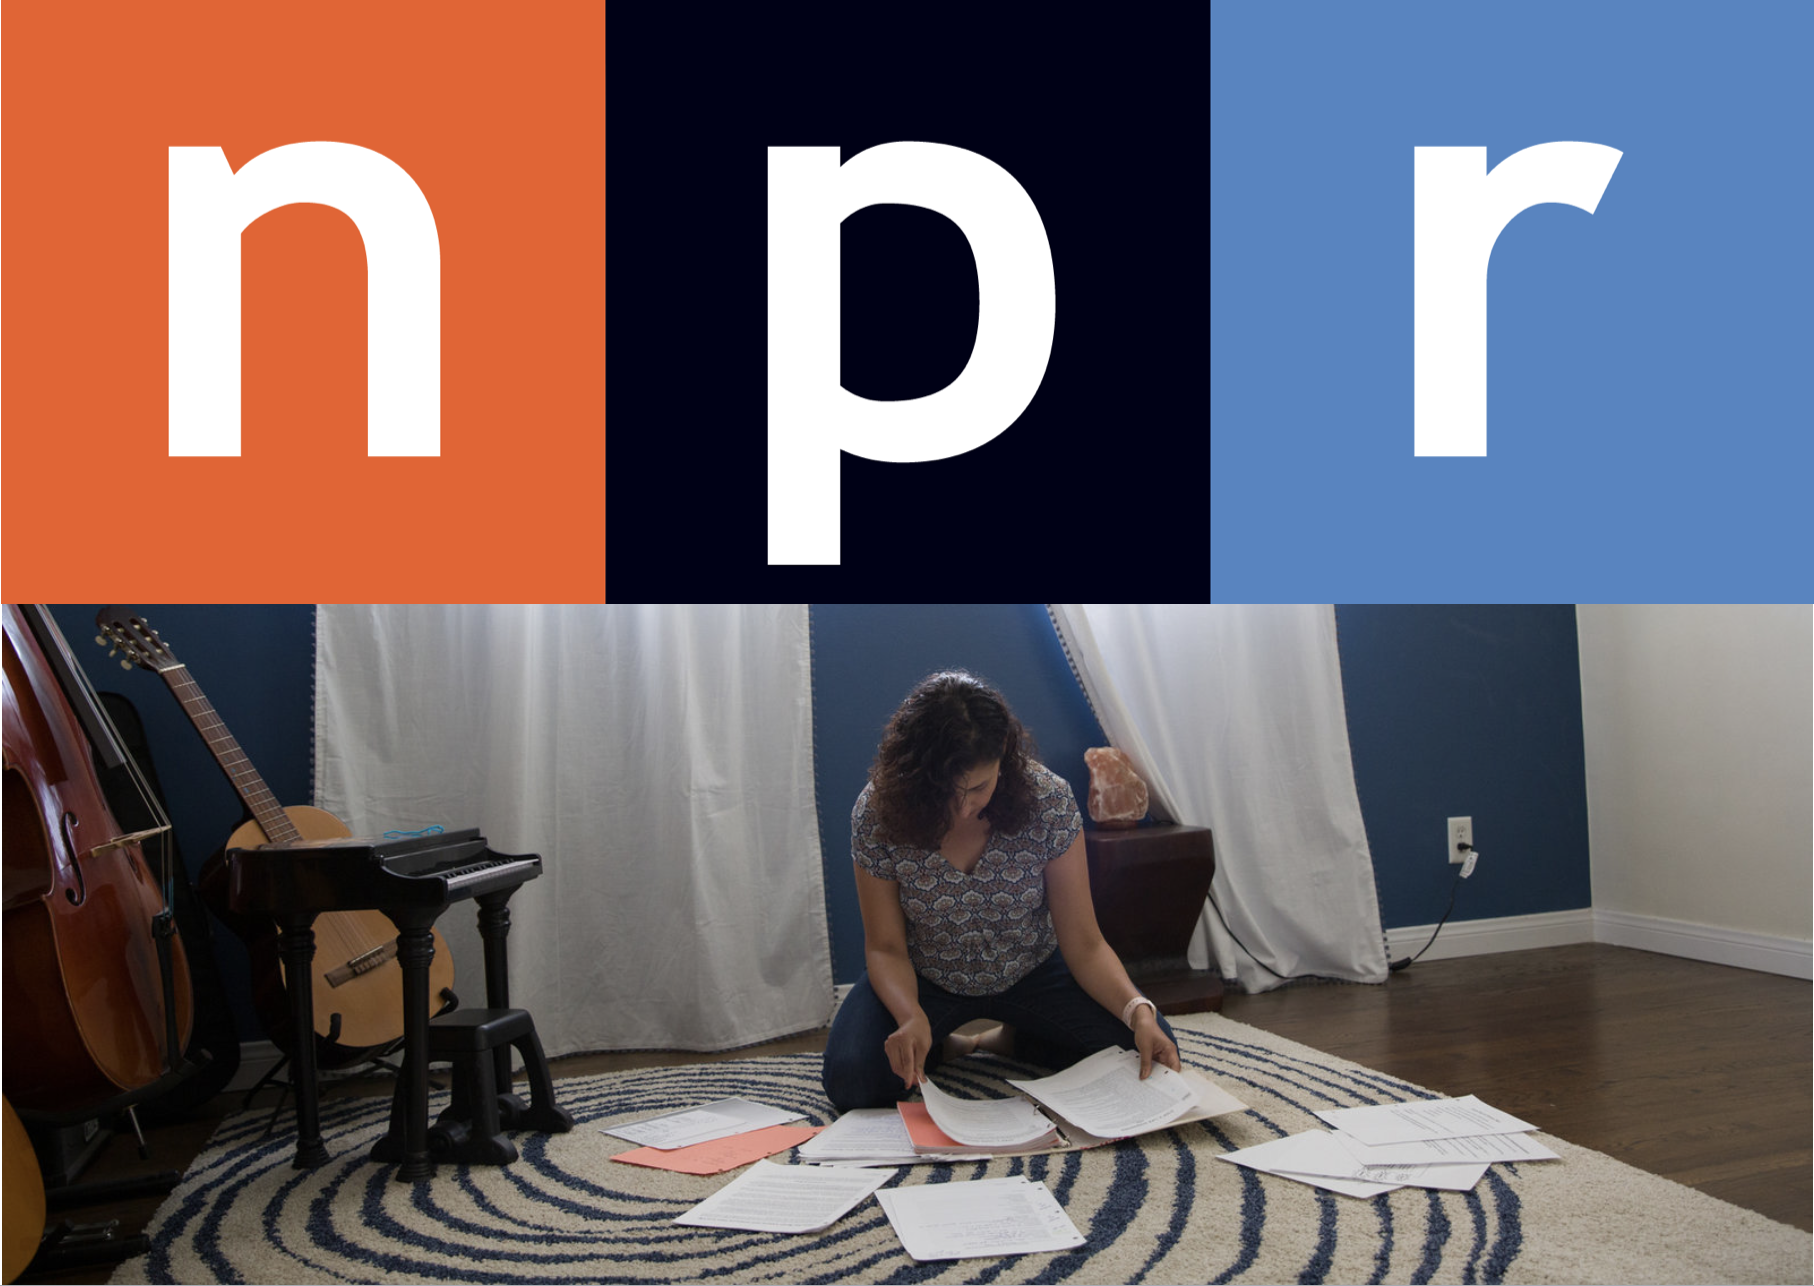 NPR Morning Edition about Emotional Expression & Awareness Therapy (EAET) featuring Dr. Mark Lumley and Dr. Howard Schubiner